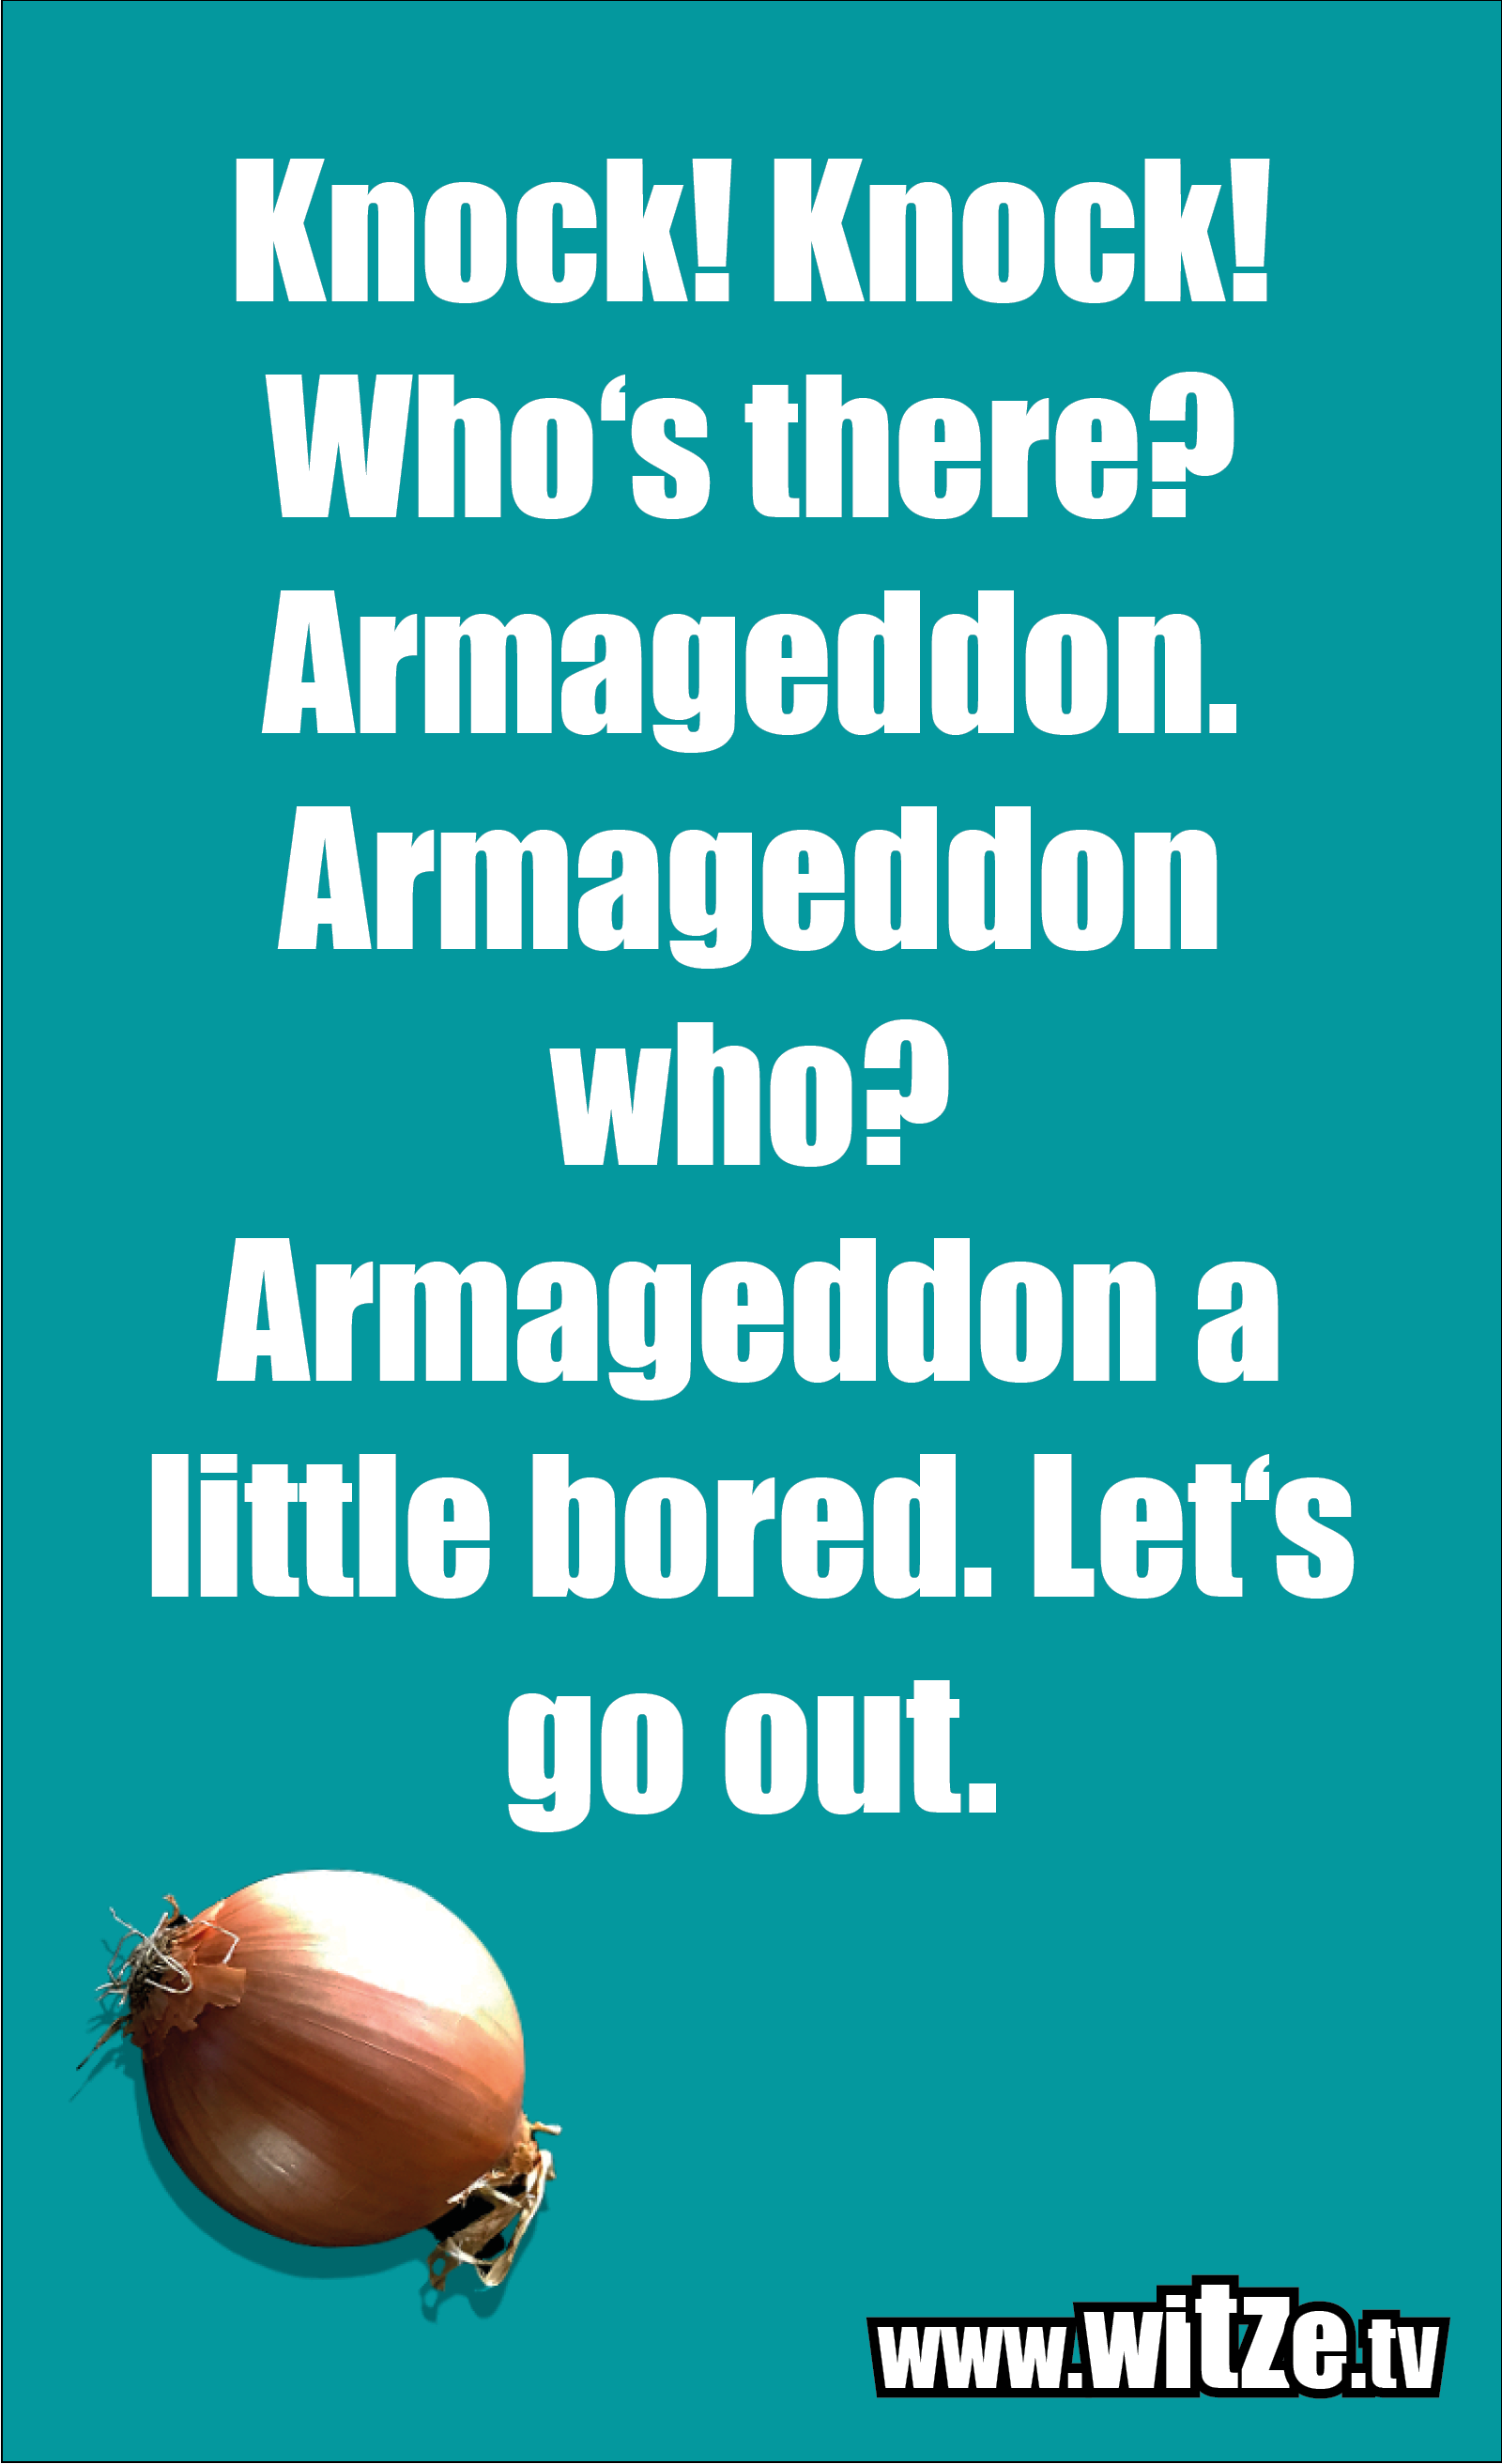 Knock! Knock! Who's there? Armageddon…